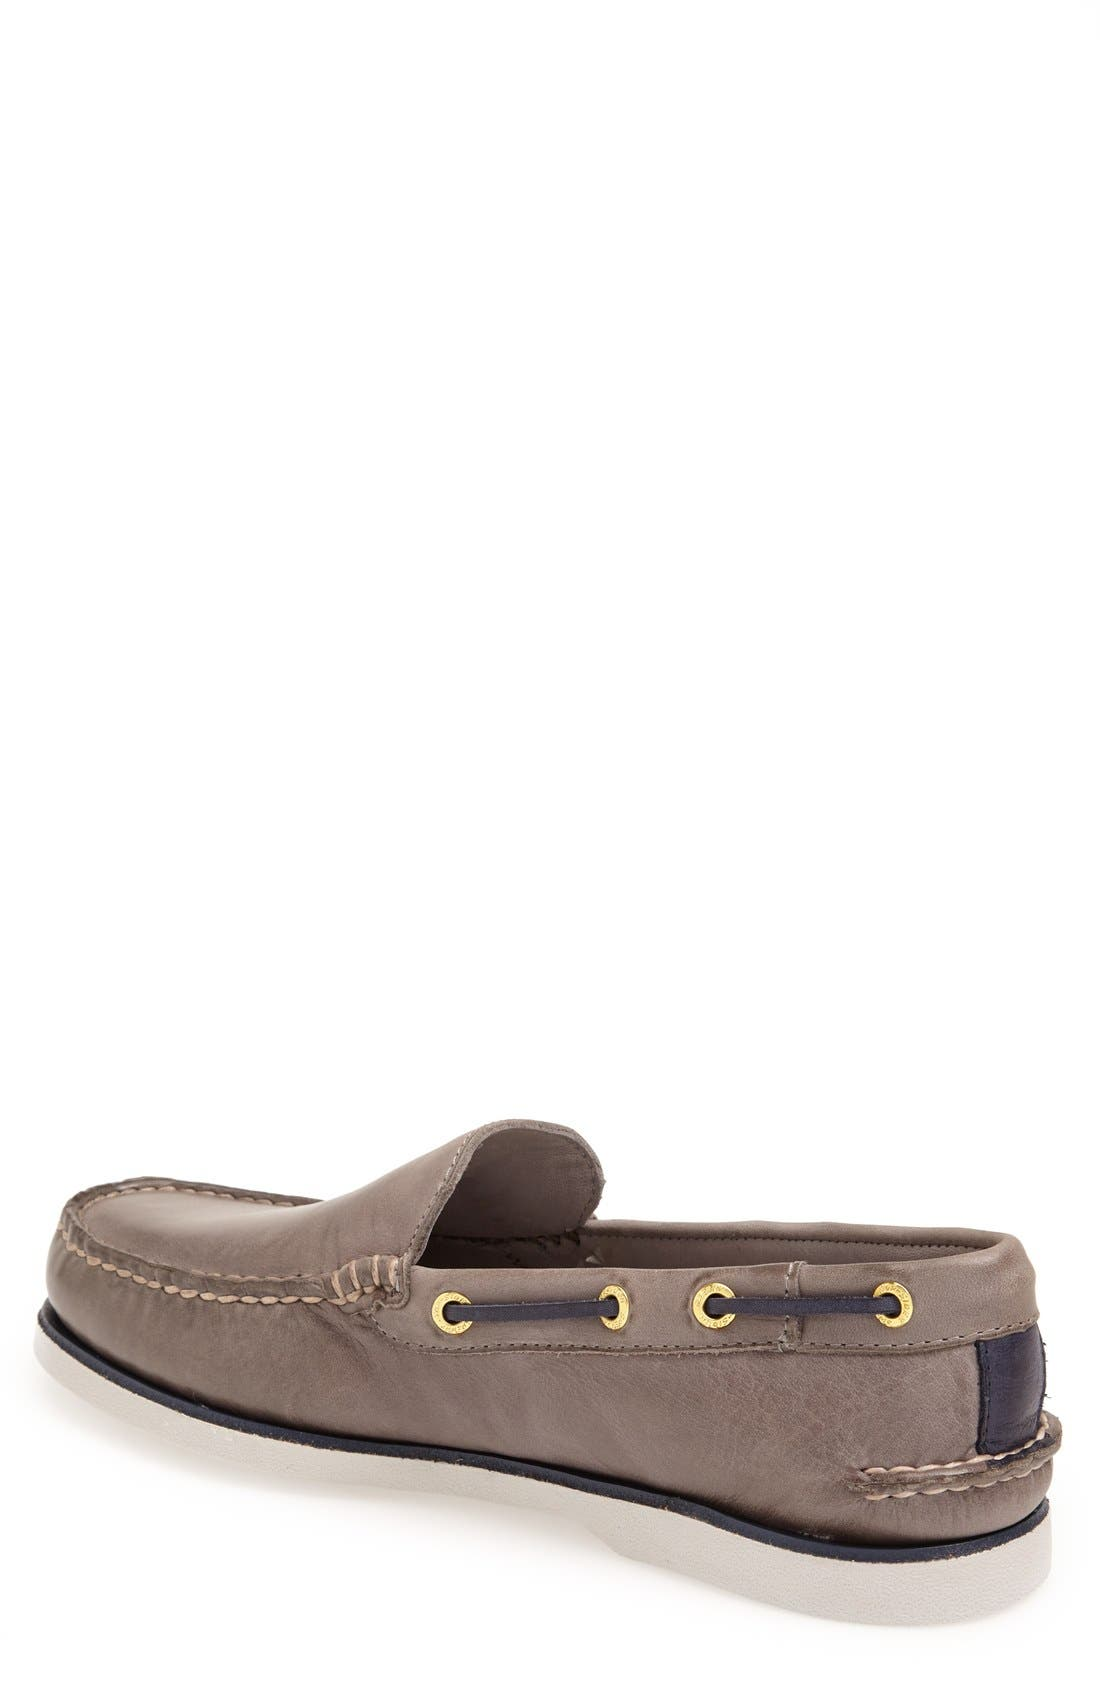 Top-Sider<sup>®</sup> 'Gold Cup - Authentic Original' Boat Shoe,                             Alternate thumbnail 2, color,                             020